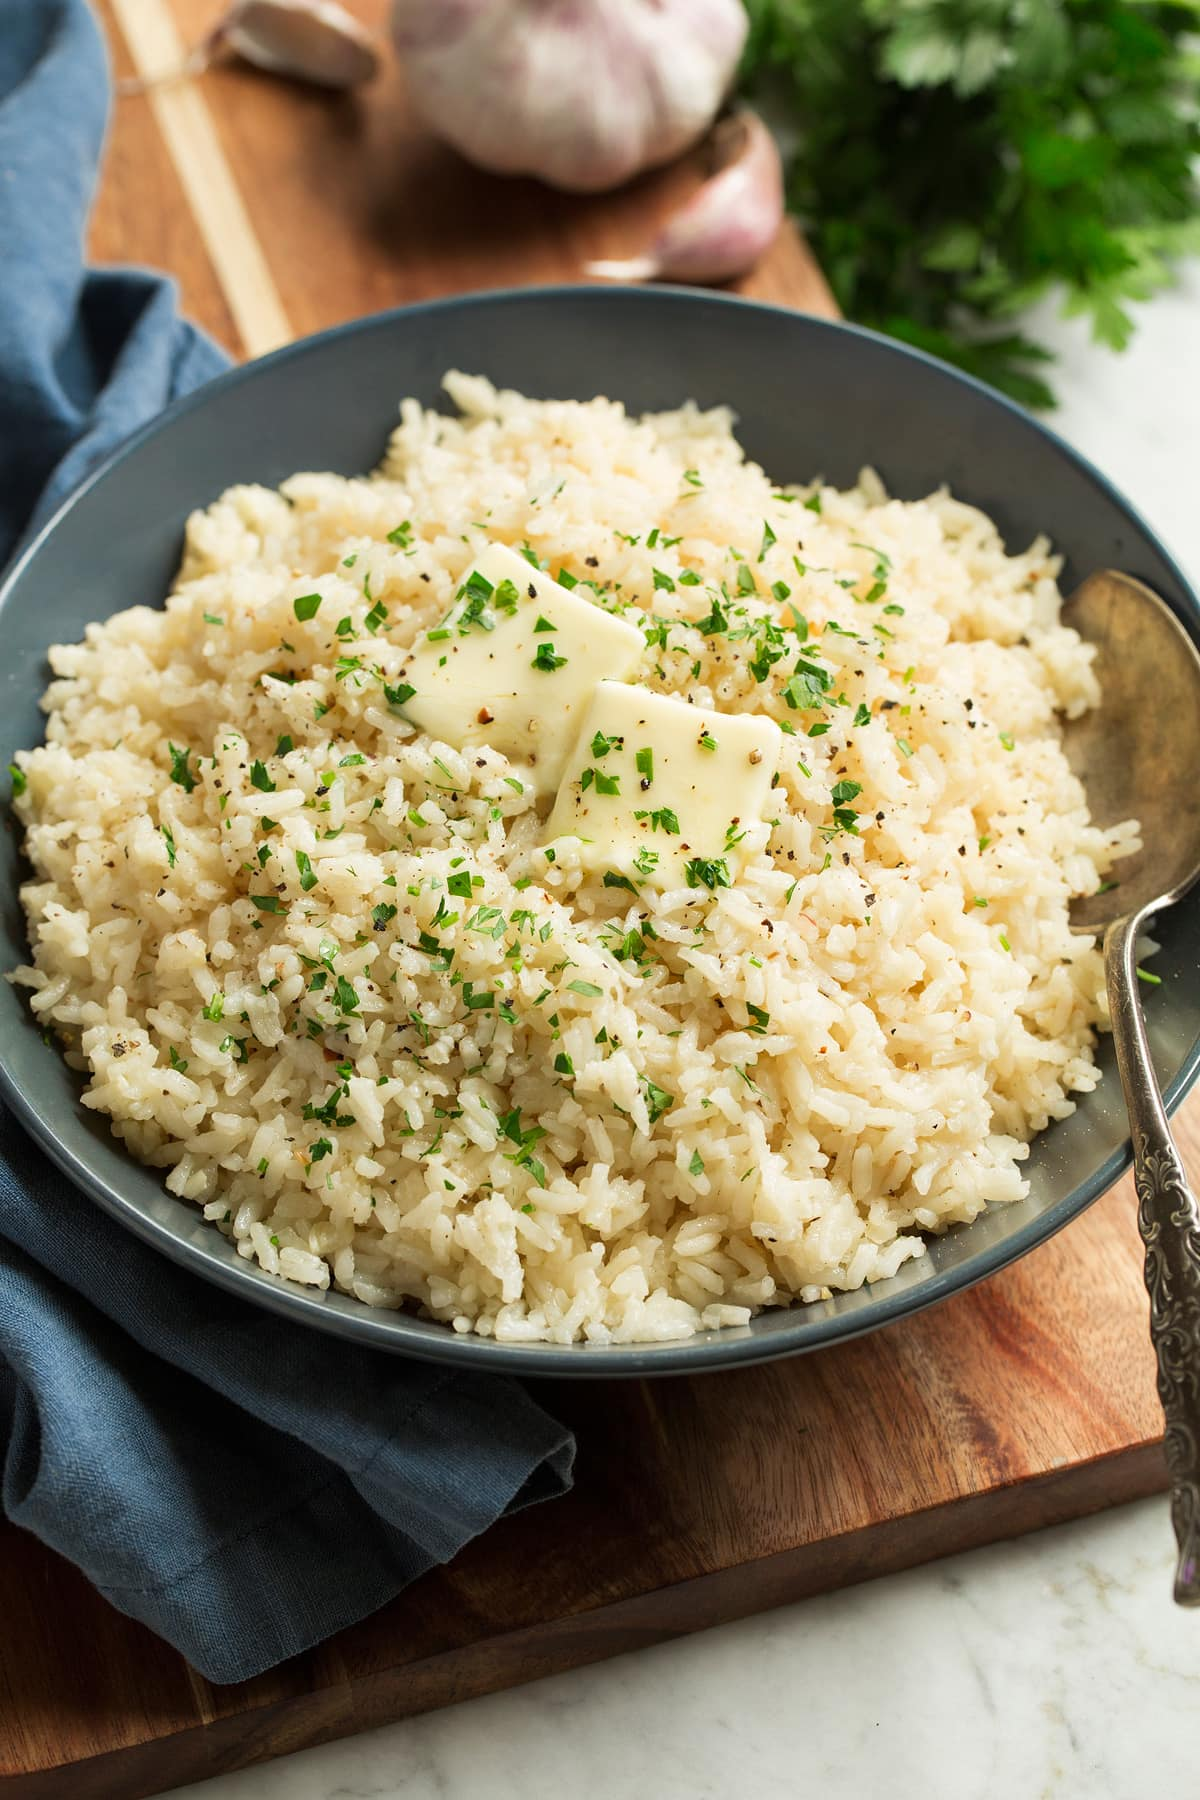 Rice seasoned with garlic and butter shown in a blue bowl over a wooden surface. Rice is topped with pieces of butter and chopped parsley.